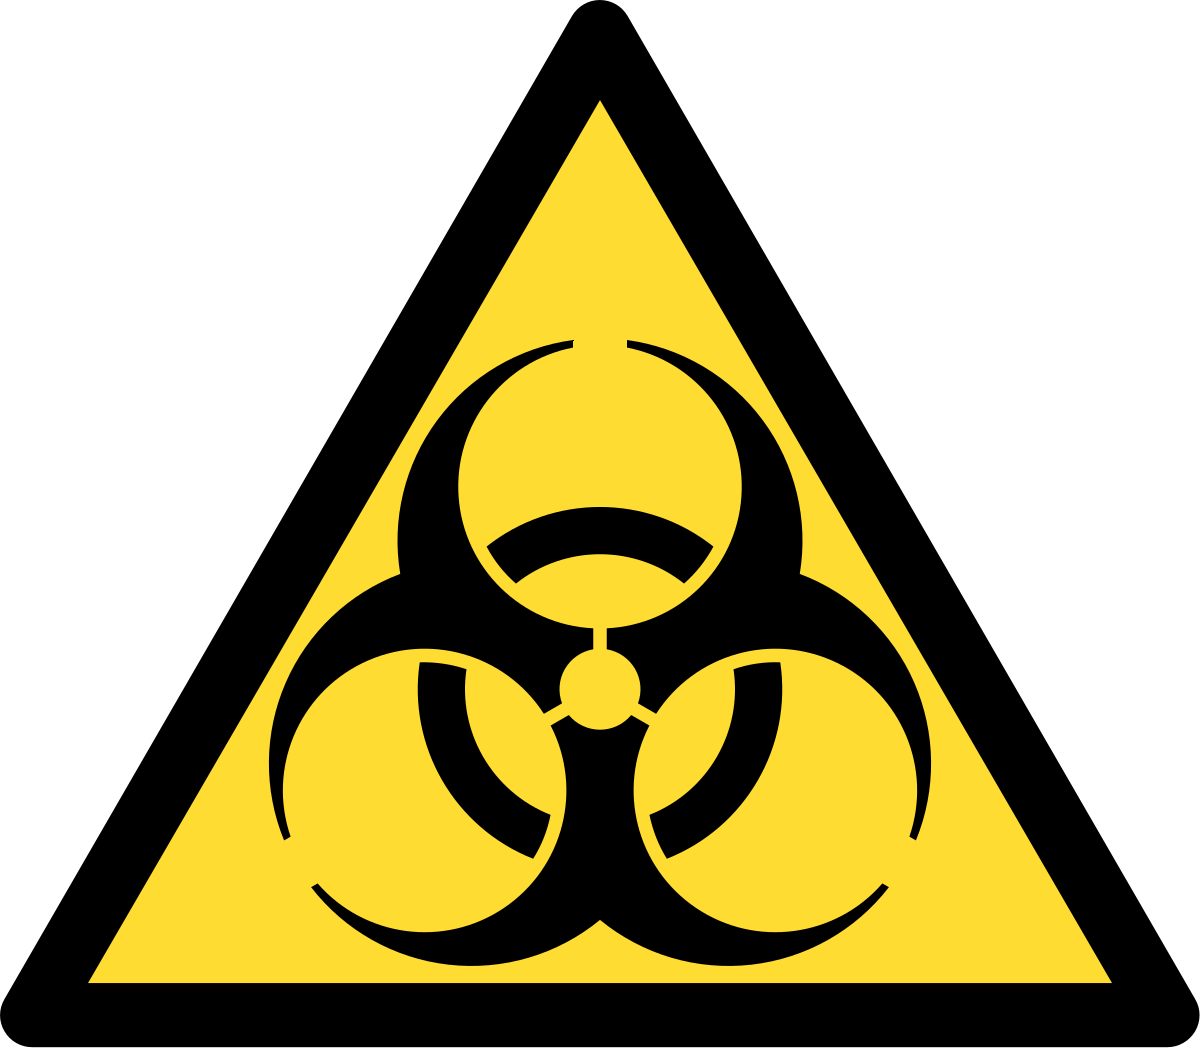 Requirements for a Biohazard Removal Cleaning Service